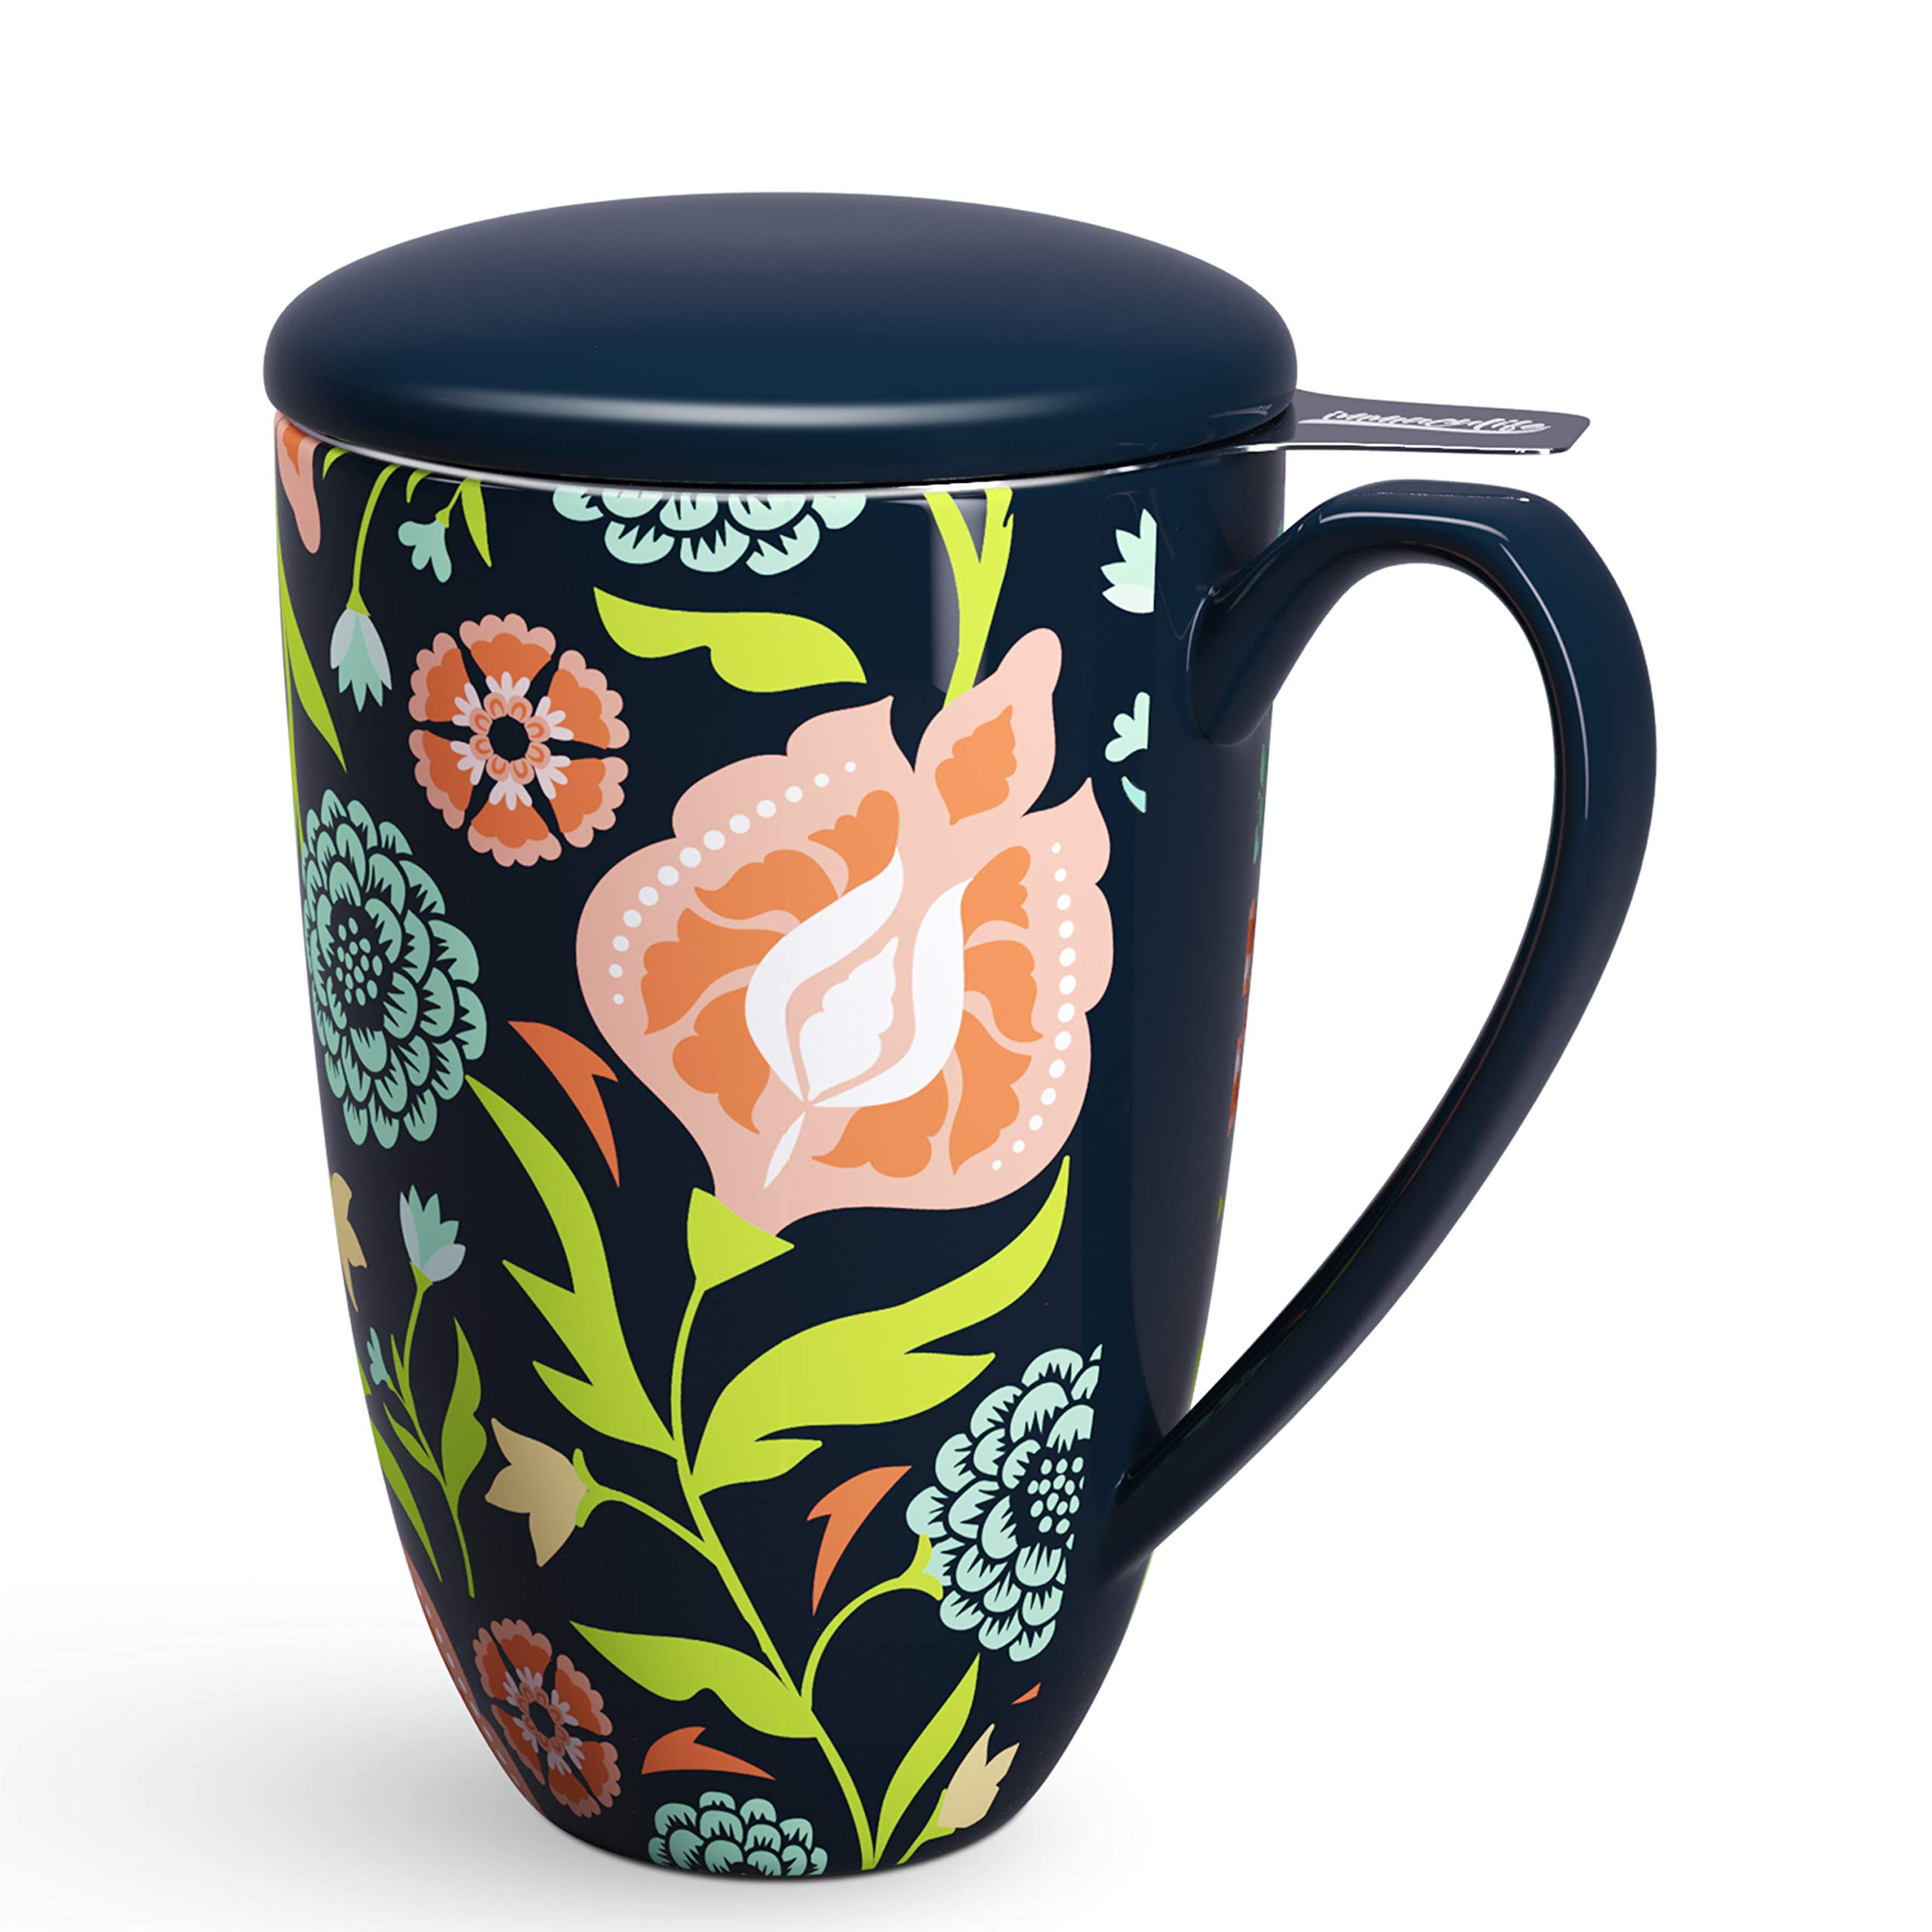 immaculife Tea Cup with Infuser Tea Mug with Infuser and Lid Teaware with Filter 15oz, Black Flower